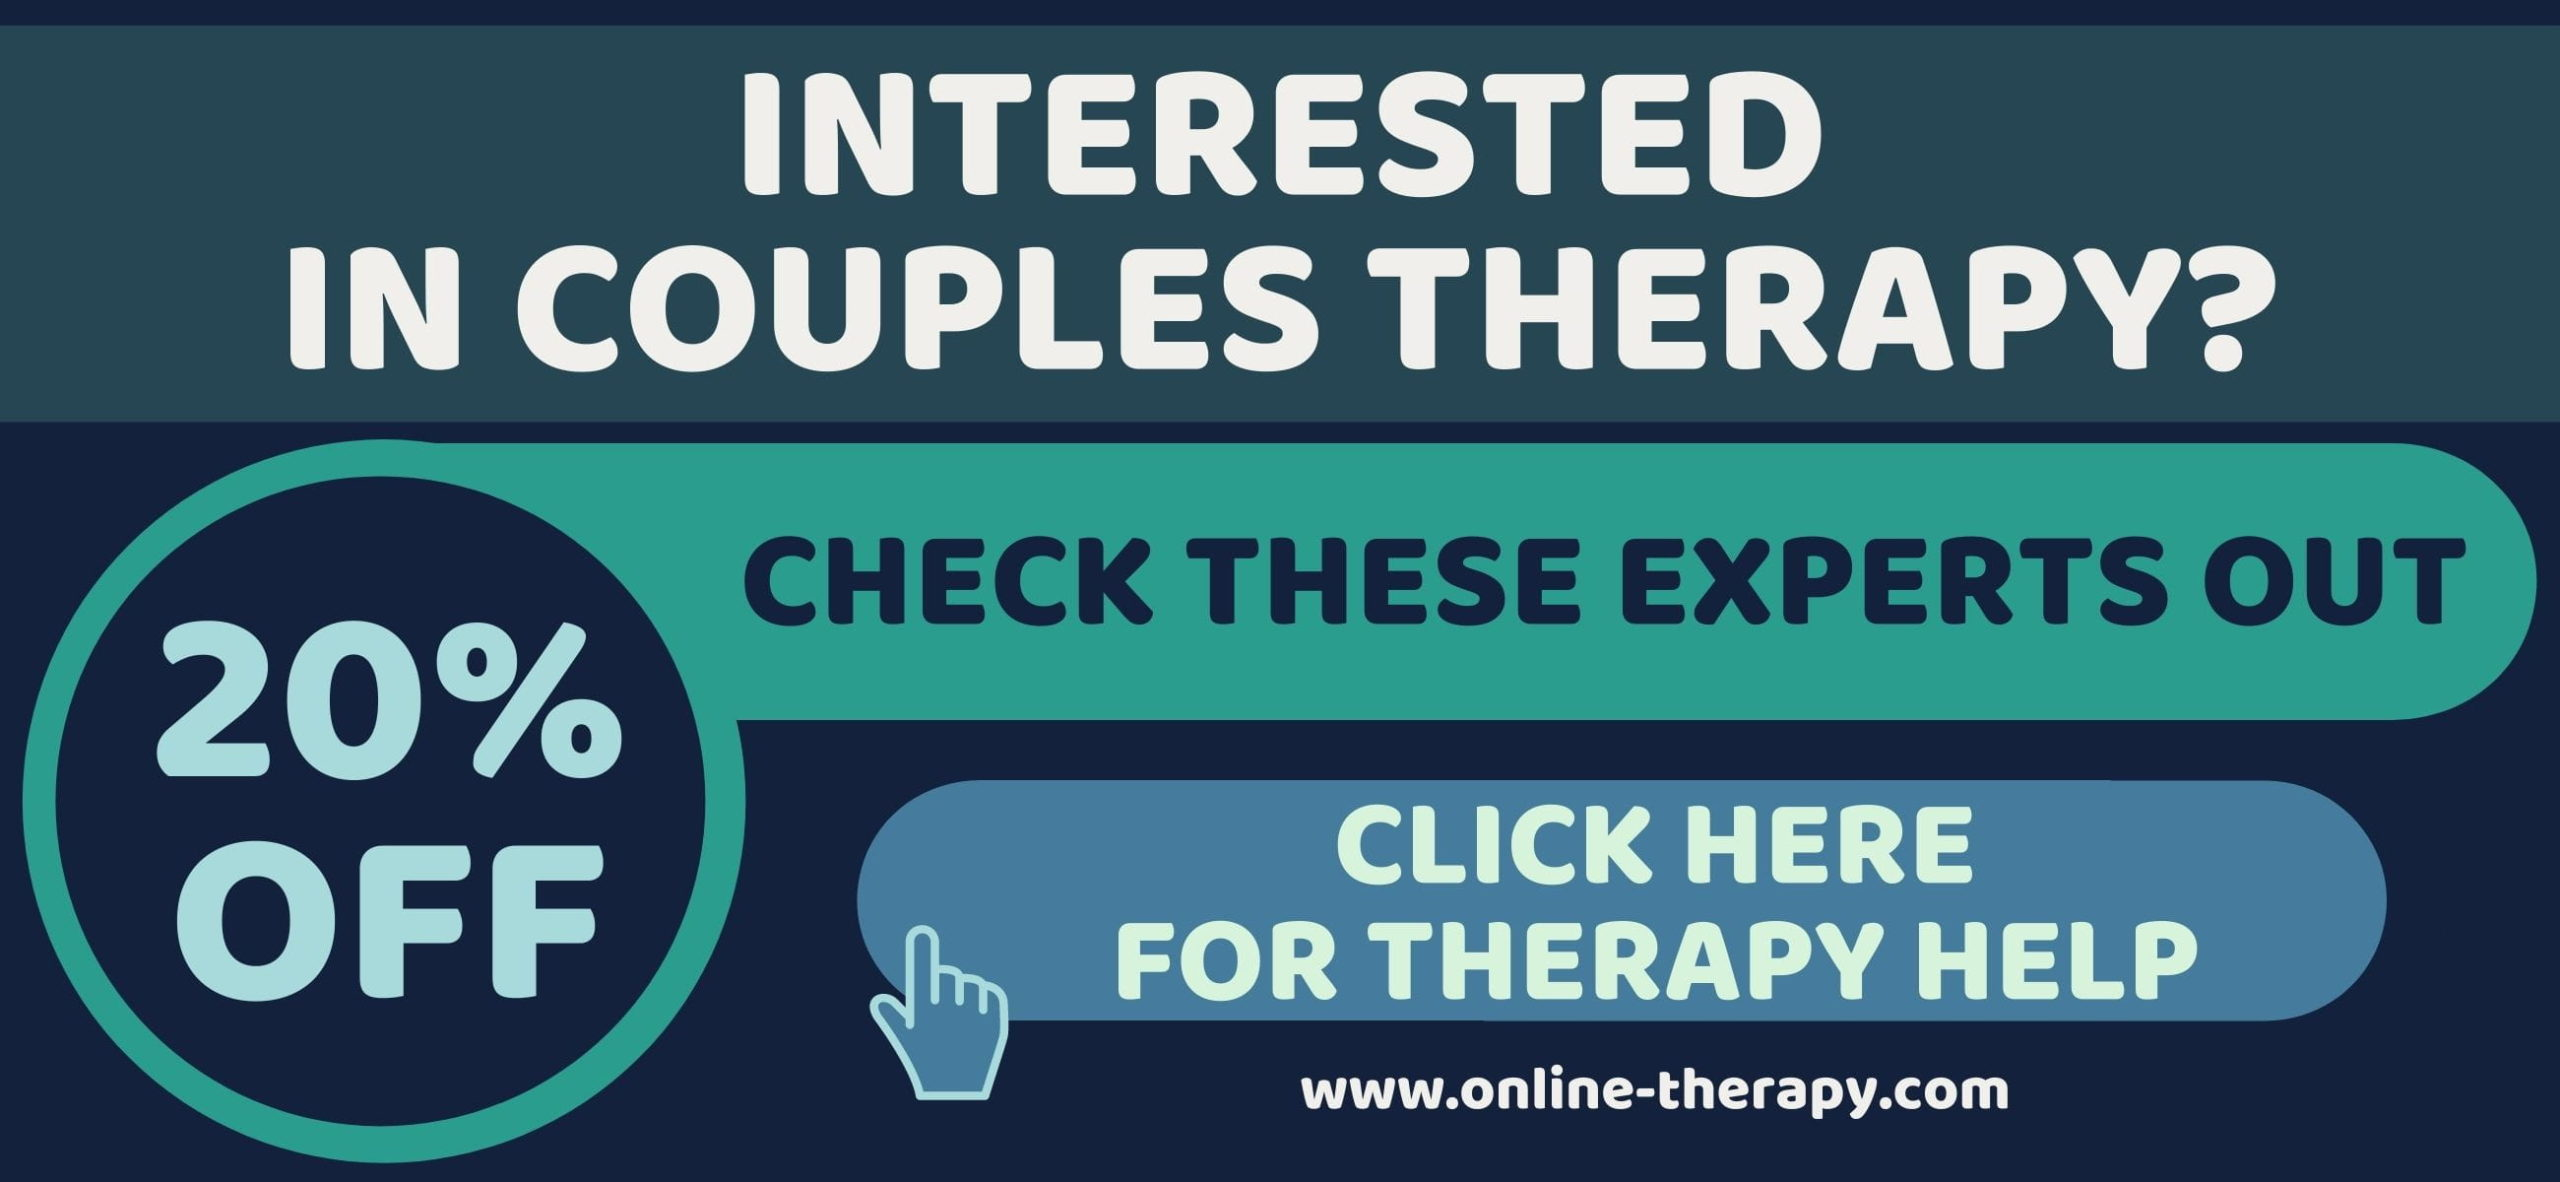 INTERESTED INCOUPLESTHERAPY_-min